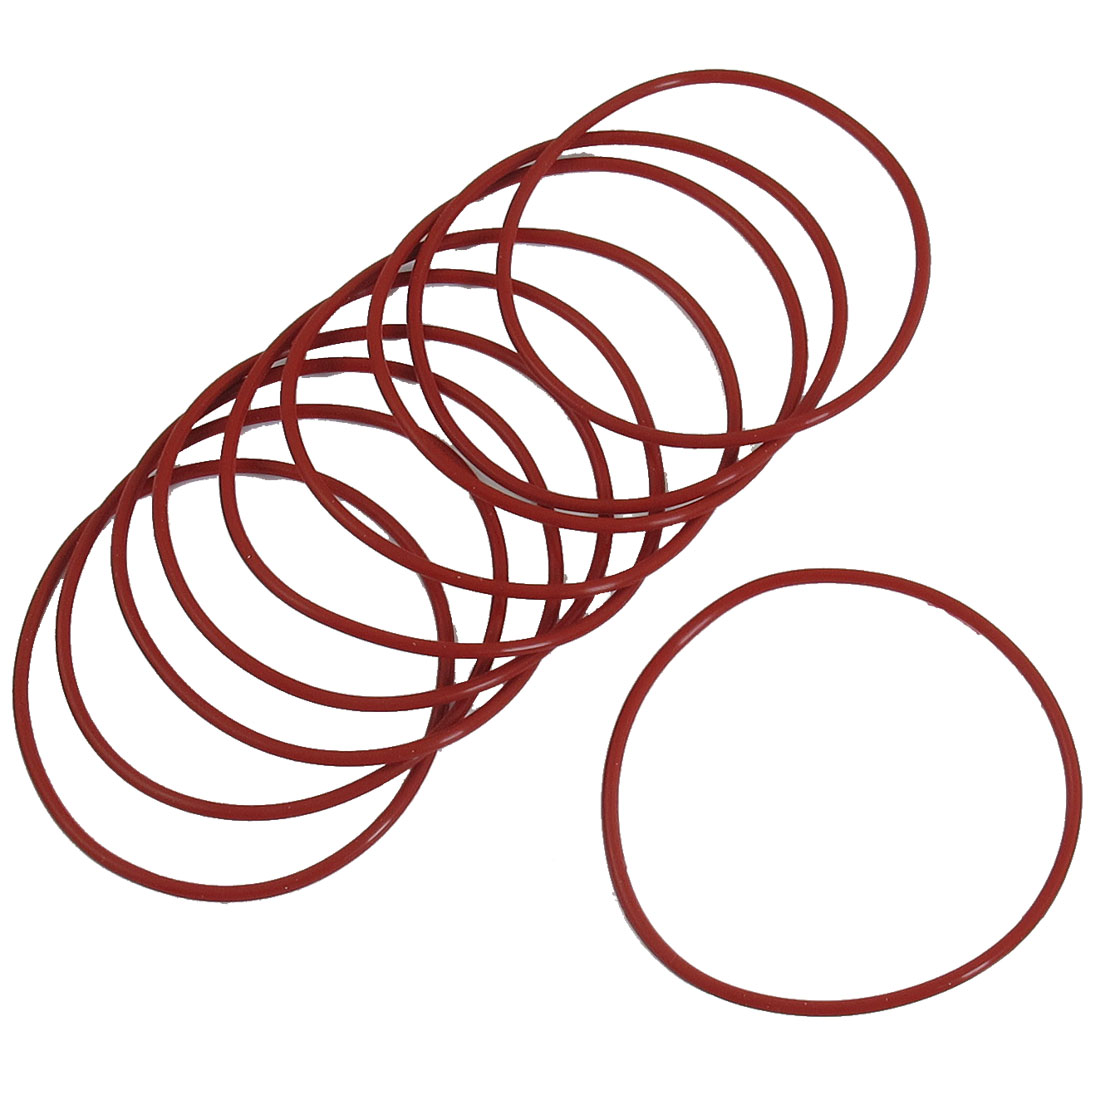 75mm x 70mm x 2.5mm Red Rubber O Shaped Rings Oil Seal Gasket Washer 10 Pcs